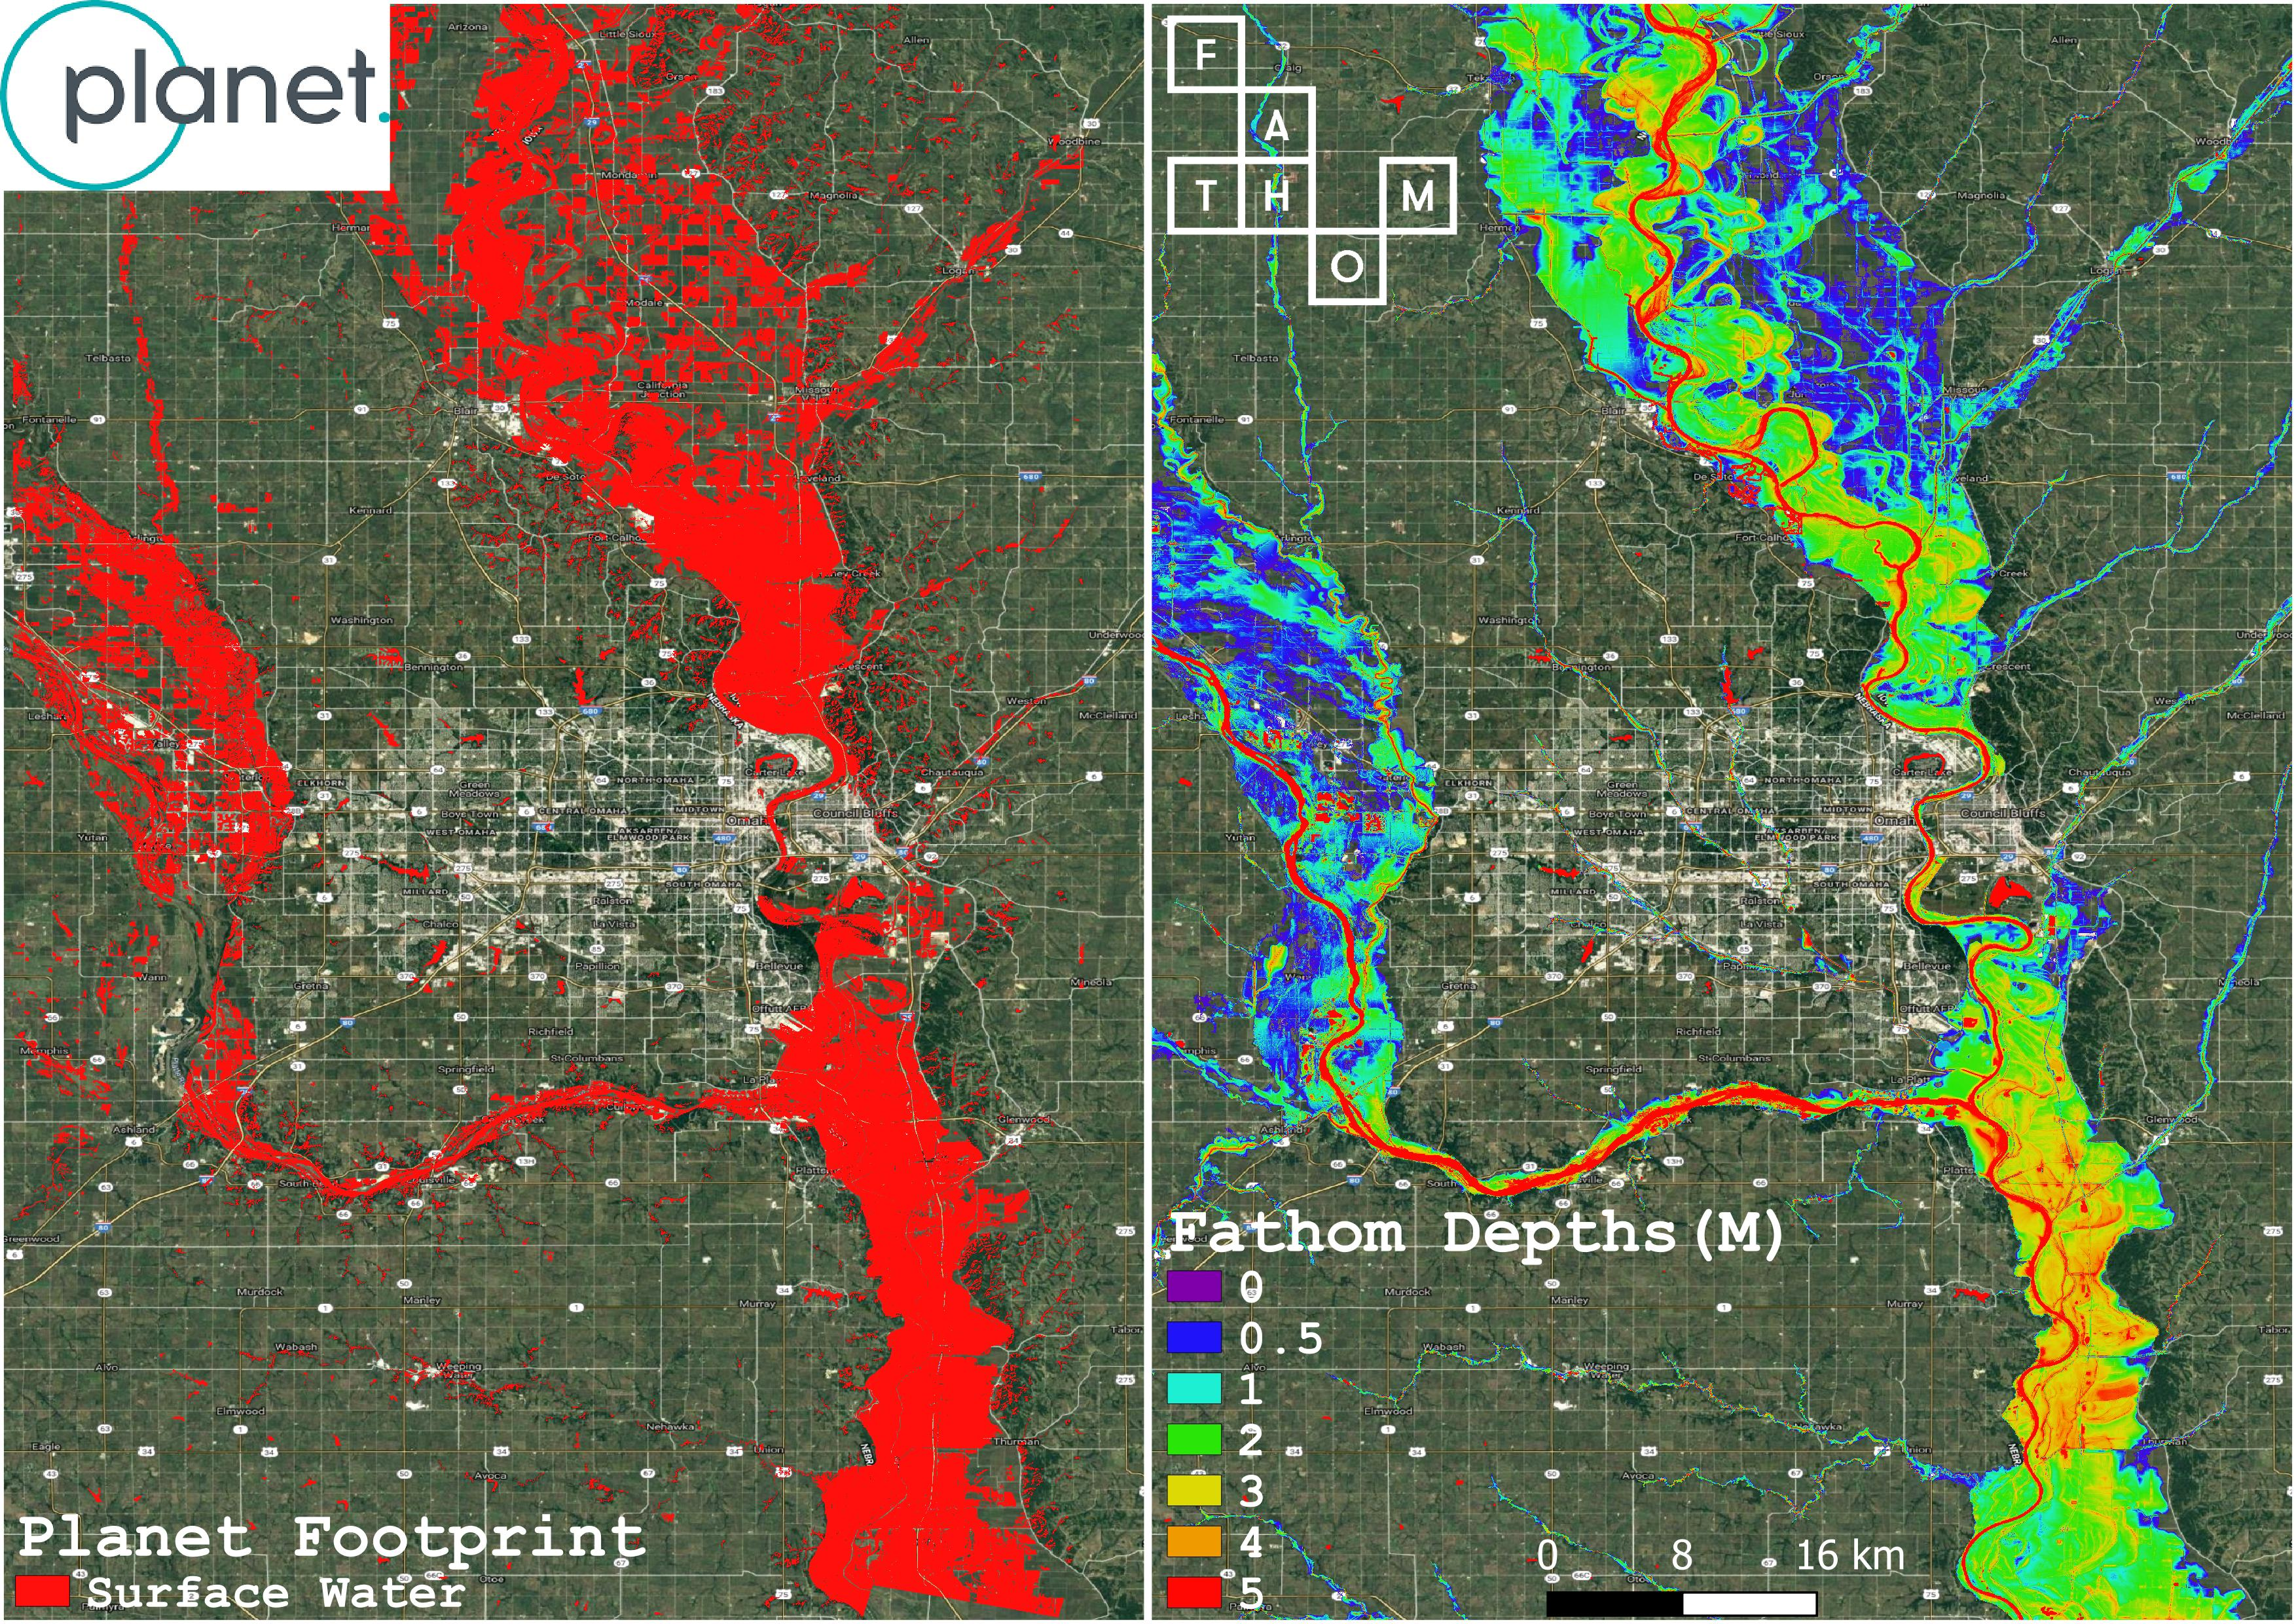 How Fathom Leverages Frequent Satellite Imagery for Dynamic ... on flood mitigation, flood information, flood alleviation, flood chart, flood hazards, flood engineering, flood protection, flood management, satellite mapping, flood photography, flood graphics, flood lighting, flood risk assessments, flood routing, flood maps, flood data, flood science,